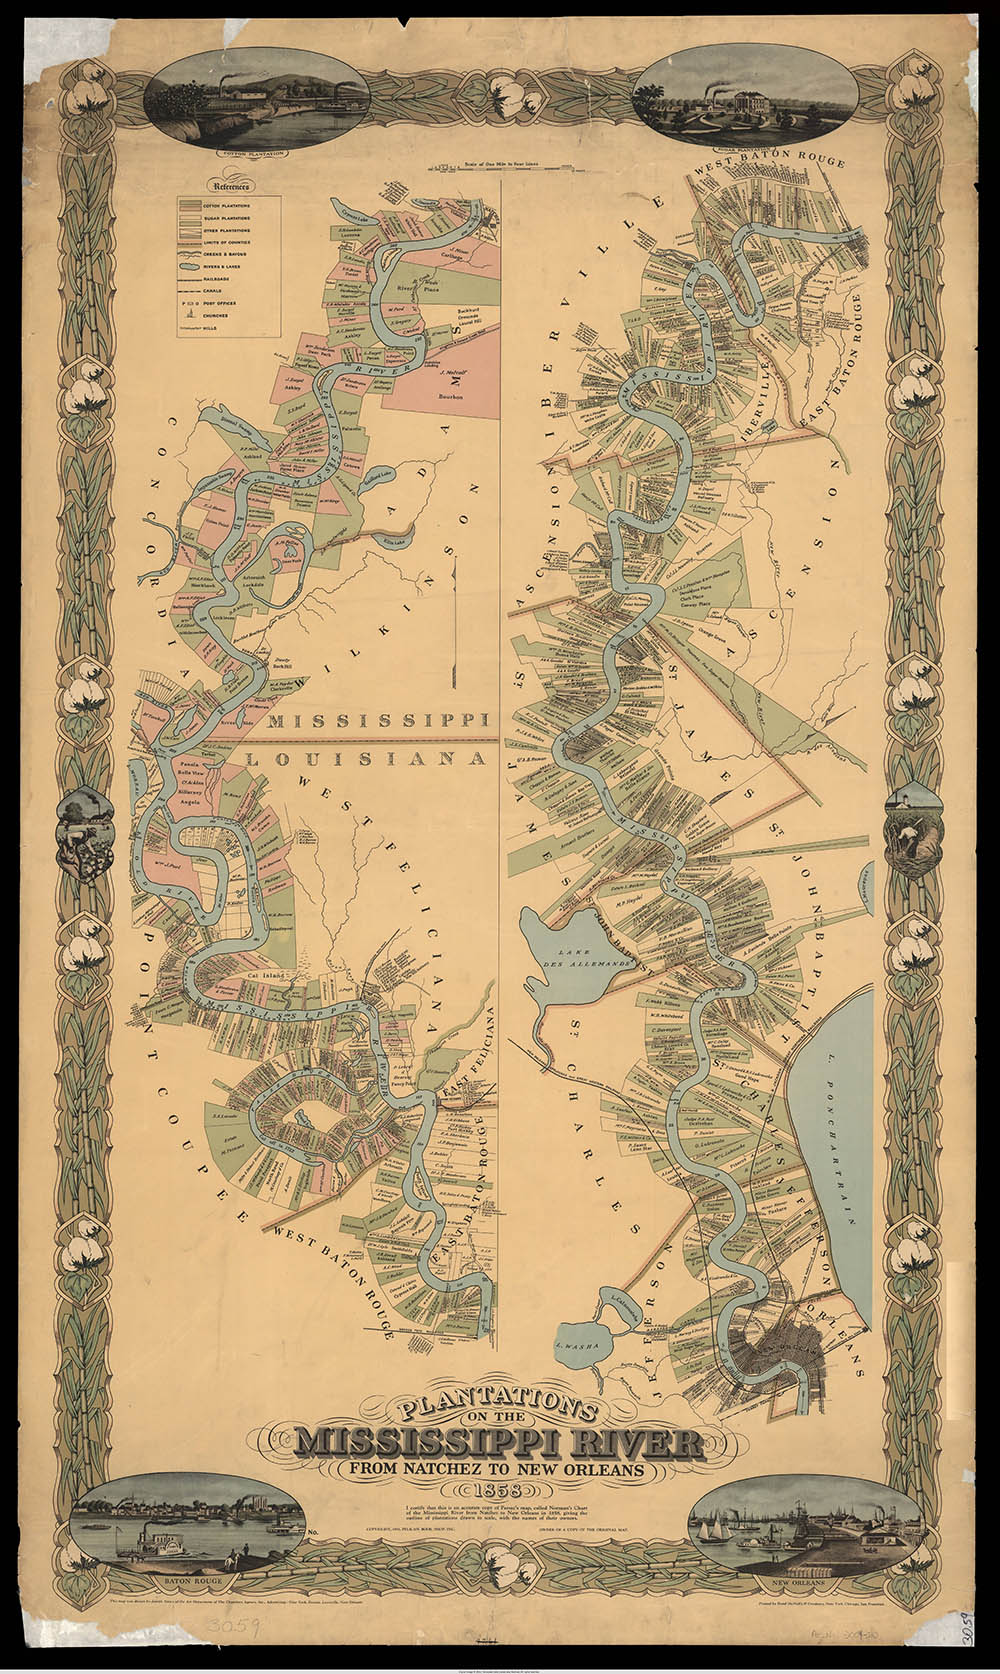 A map of the richest plantations of the Old South along the Mississippi River